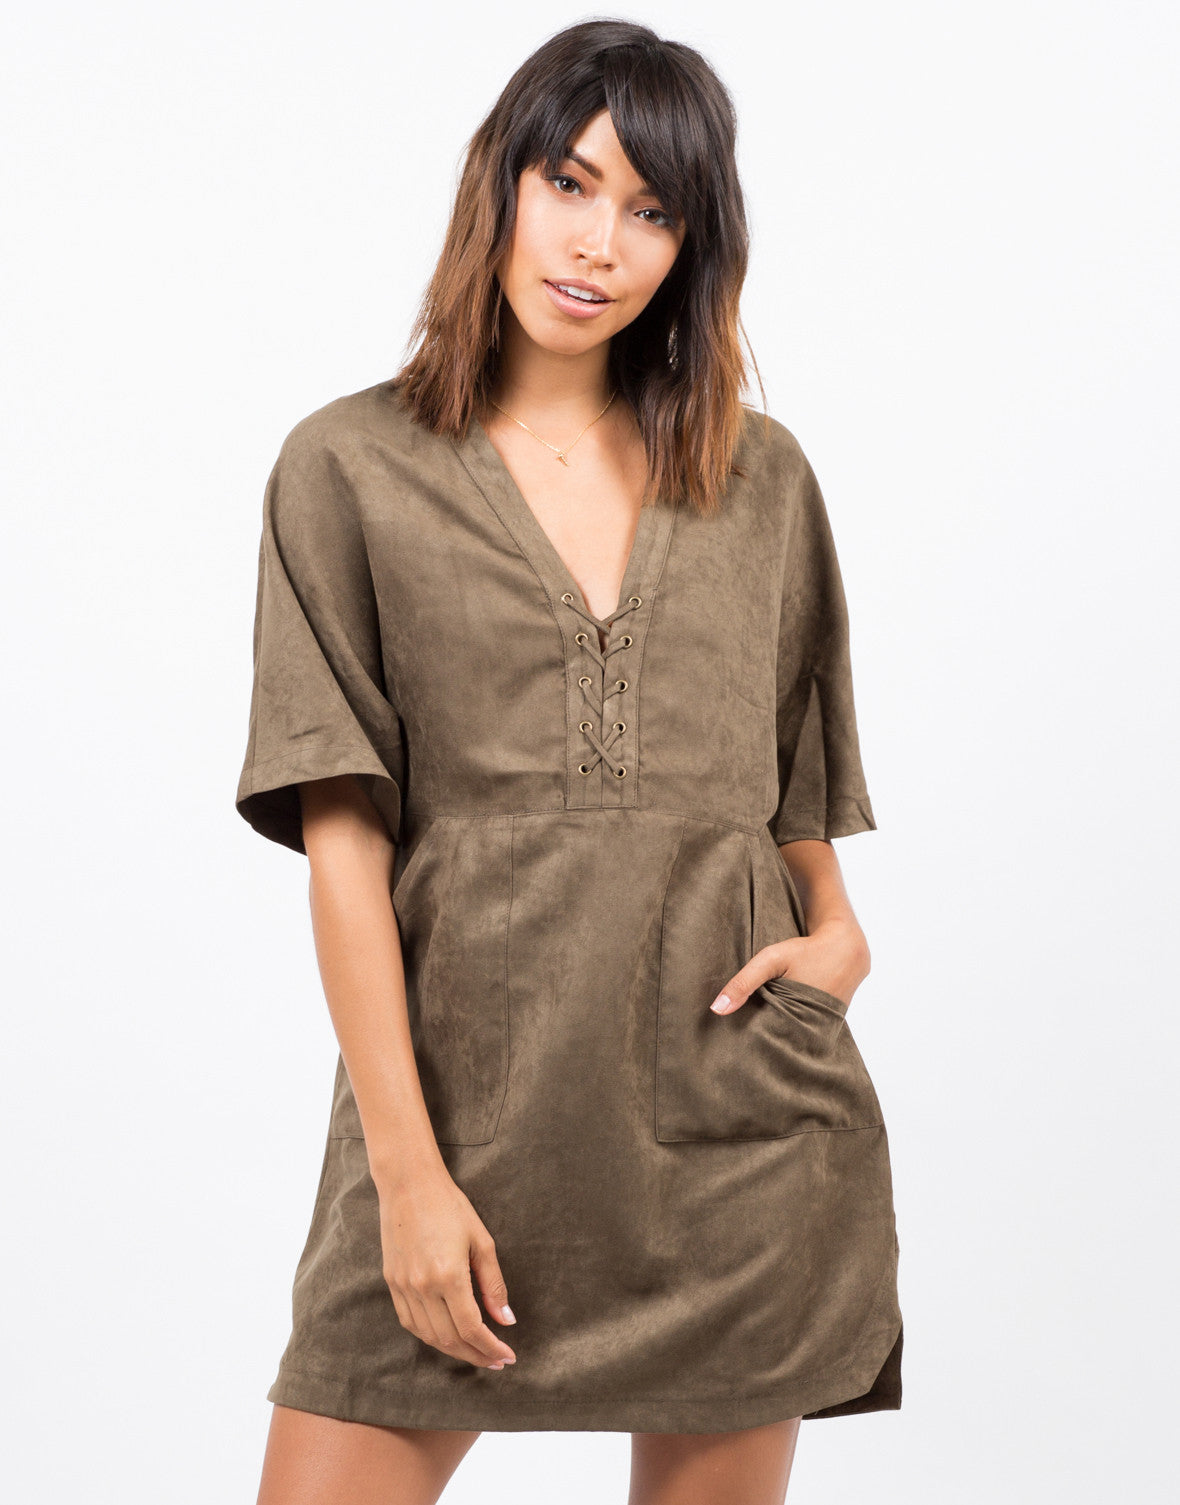 Front View of Suede Lace Up T-Shirt Dress